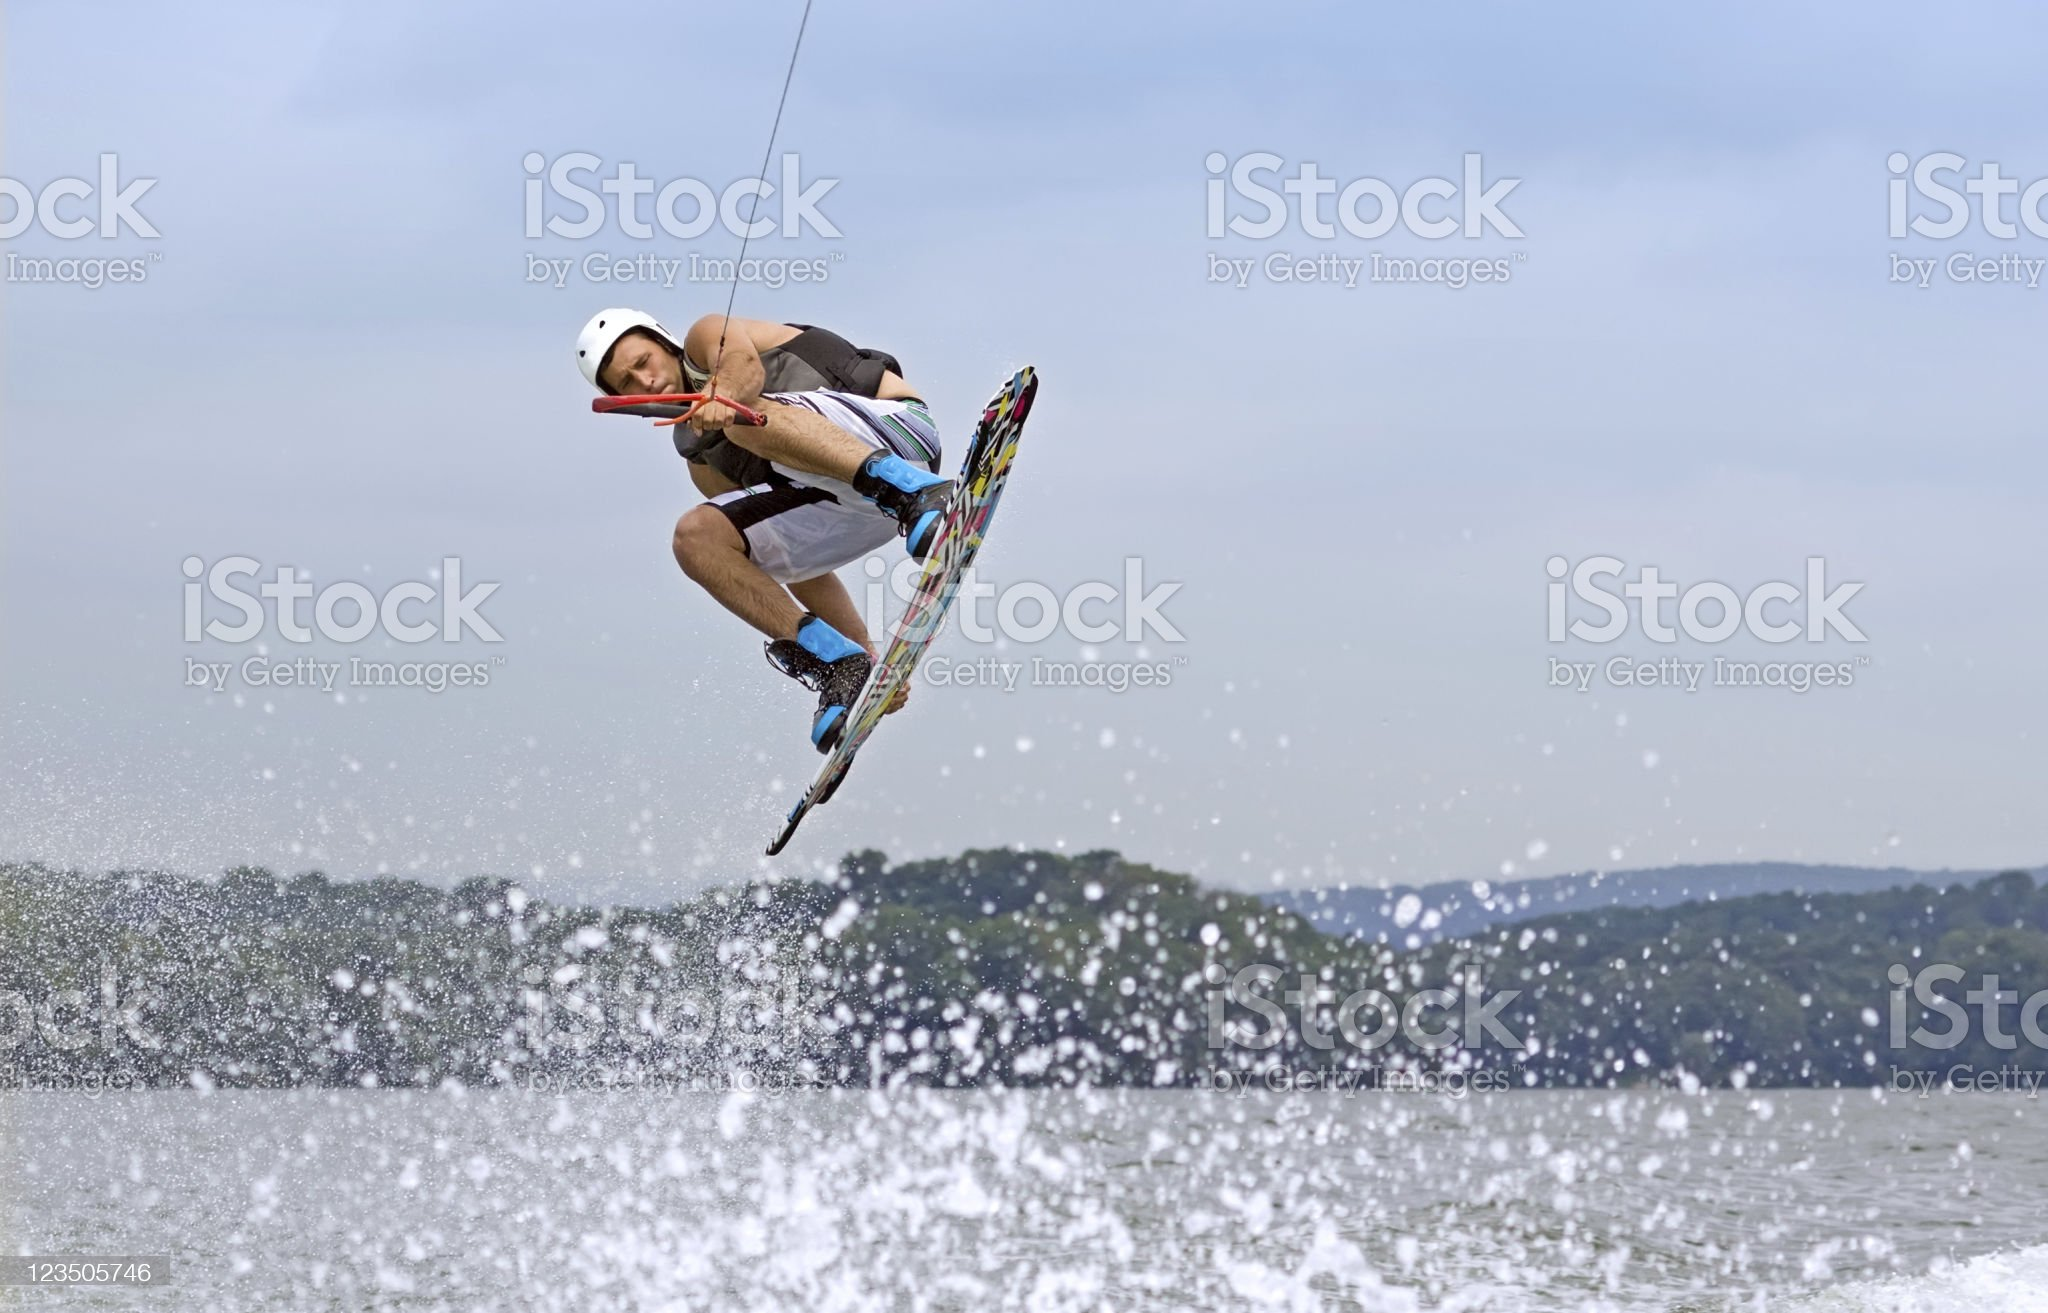 Wakeboarder Jumping High royalty-free stock photo